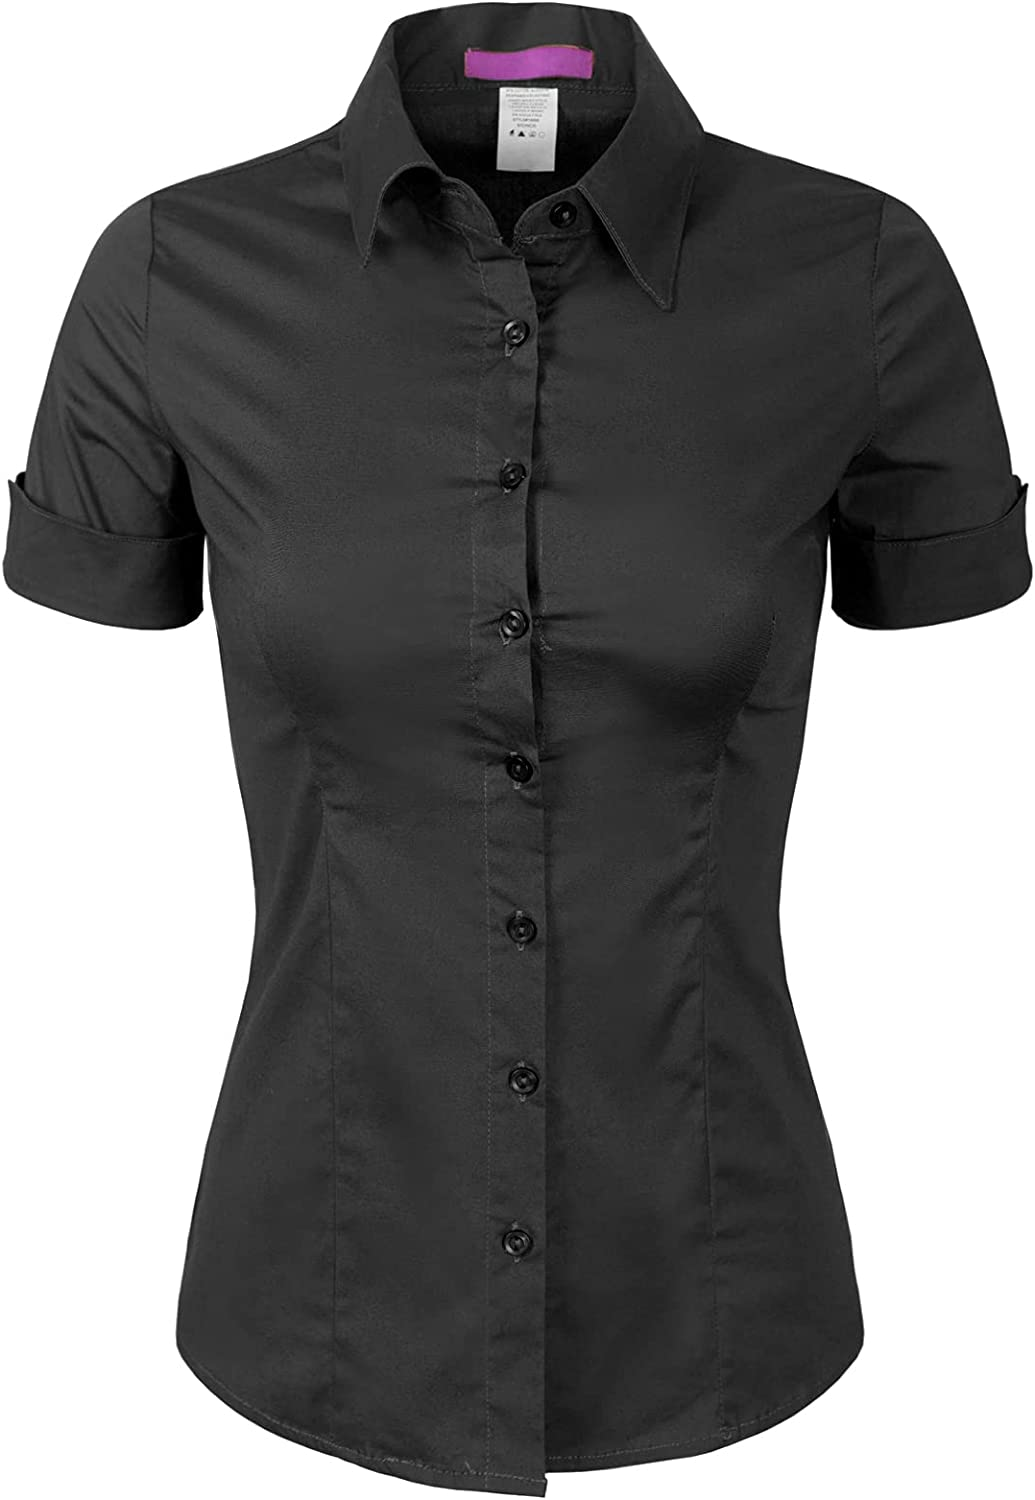 Design by Olivia Women's Junior Fit Short Sleeve Stretchy Button Down Collar Office Formal Casual Blouse Shirts Top (S-3XL)